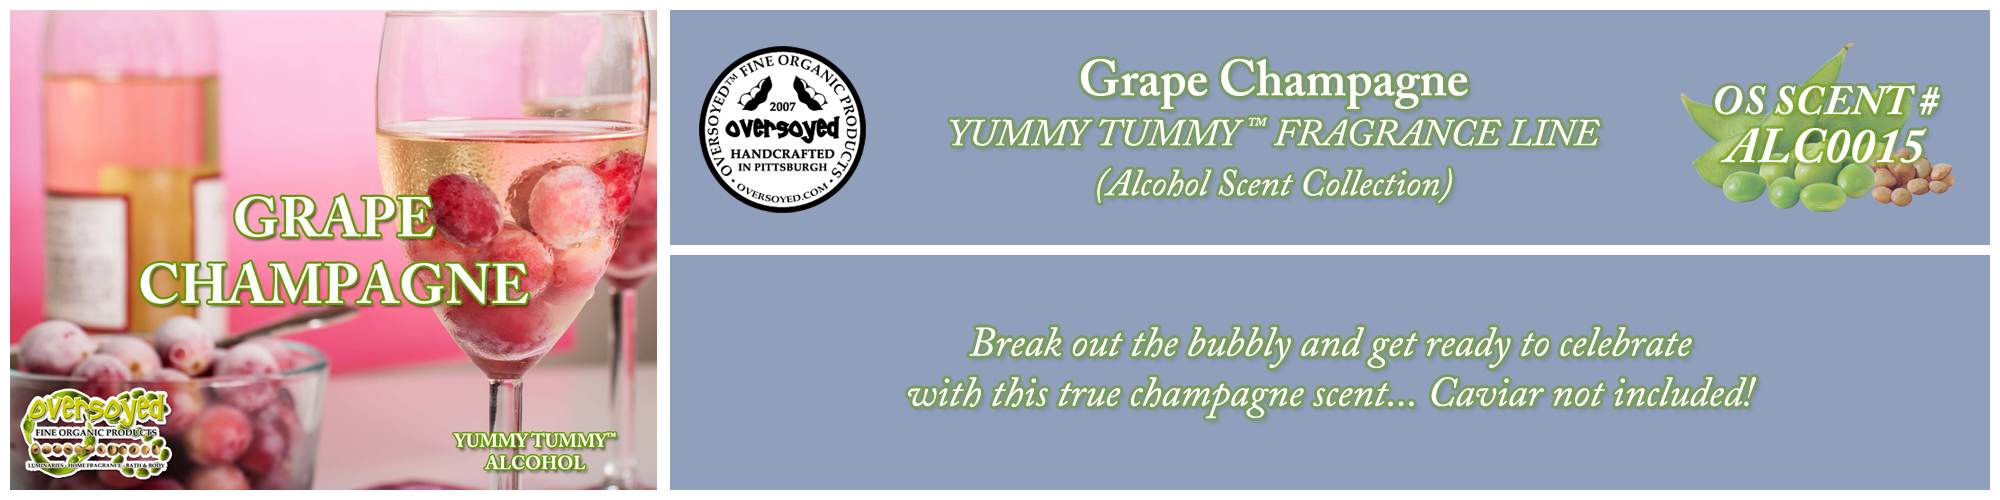 Grape Champagne Handcrafted Products Collection